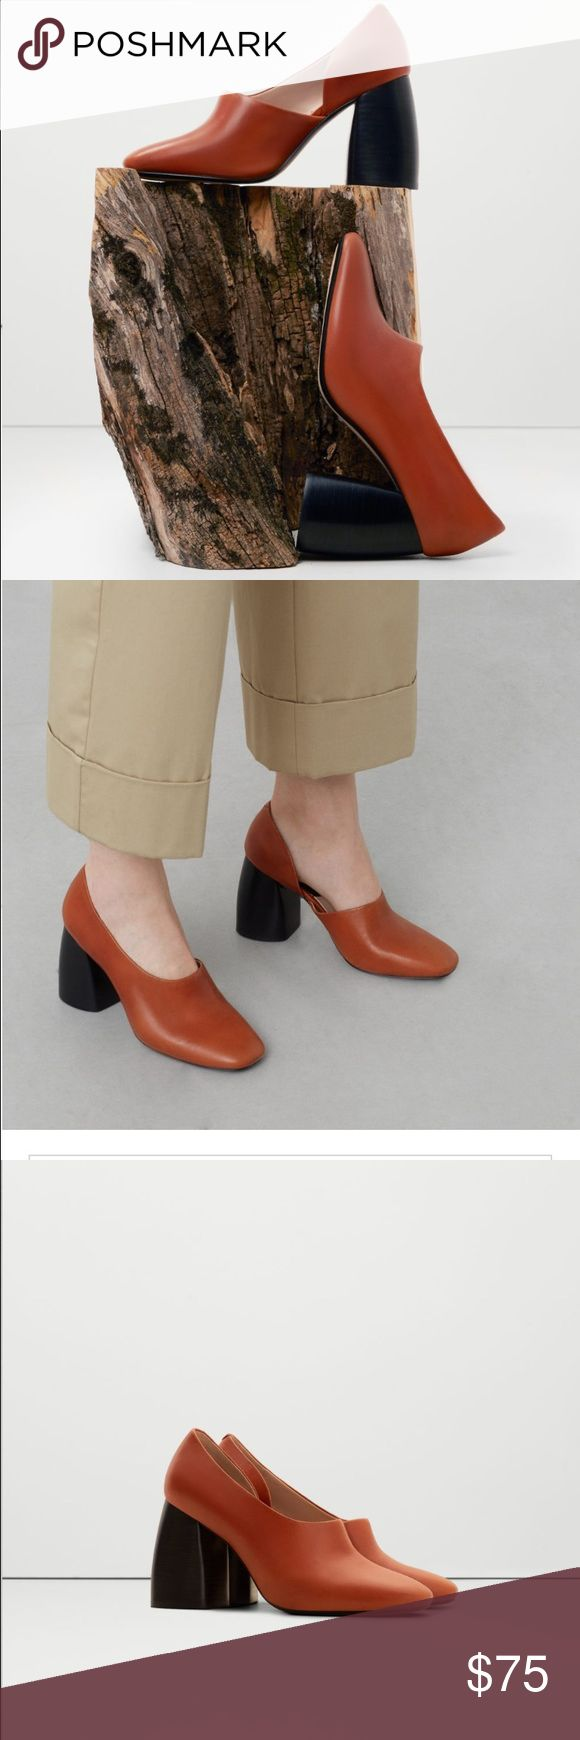 ISO Mango heel leather shoes in 6/6.5 IN SEARCH OF these cute hooties from mango known as heel leather shoes. Ideally I'd like to pay 75$, but let me know how much you like to sell.  I appreciate similar looks as well, but love love love this leather color! Mango Shoes Heeled Boots